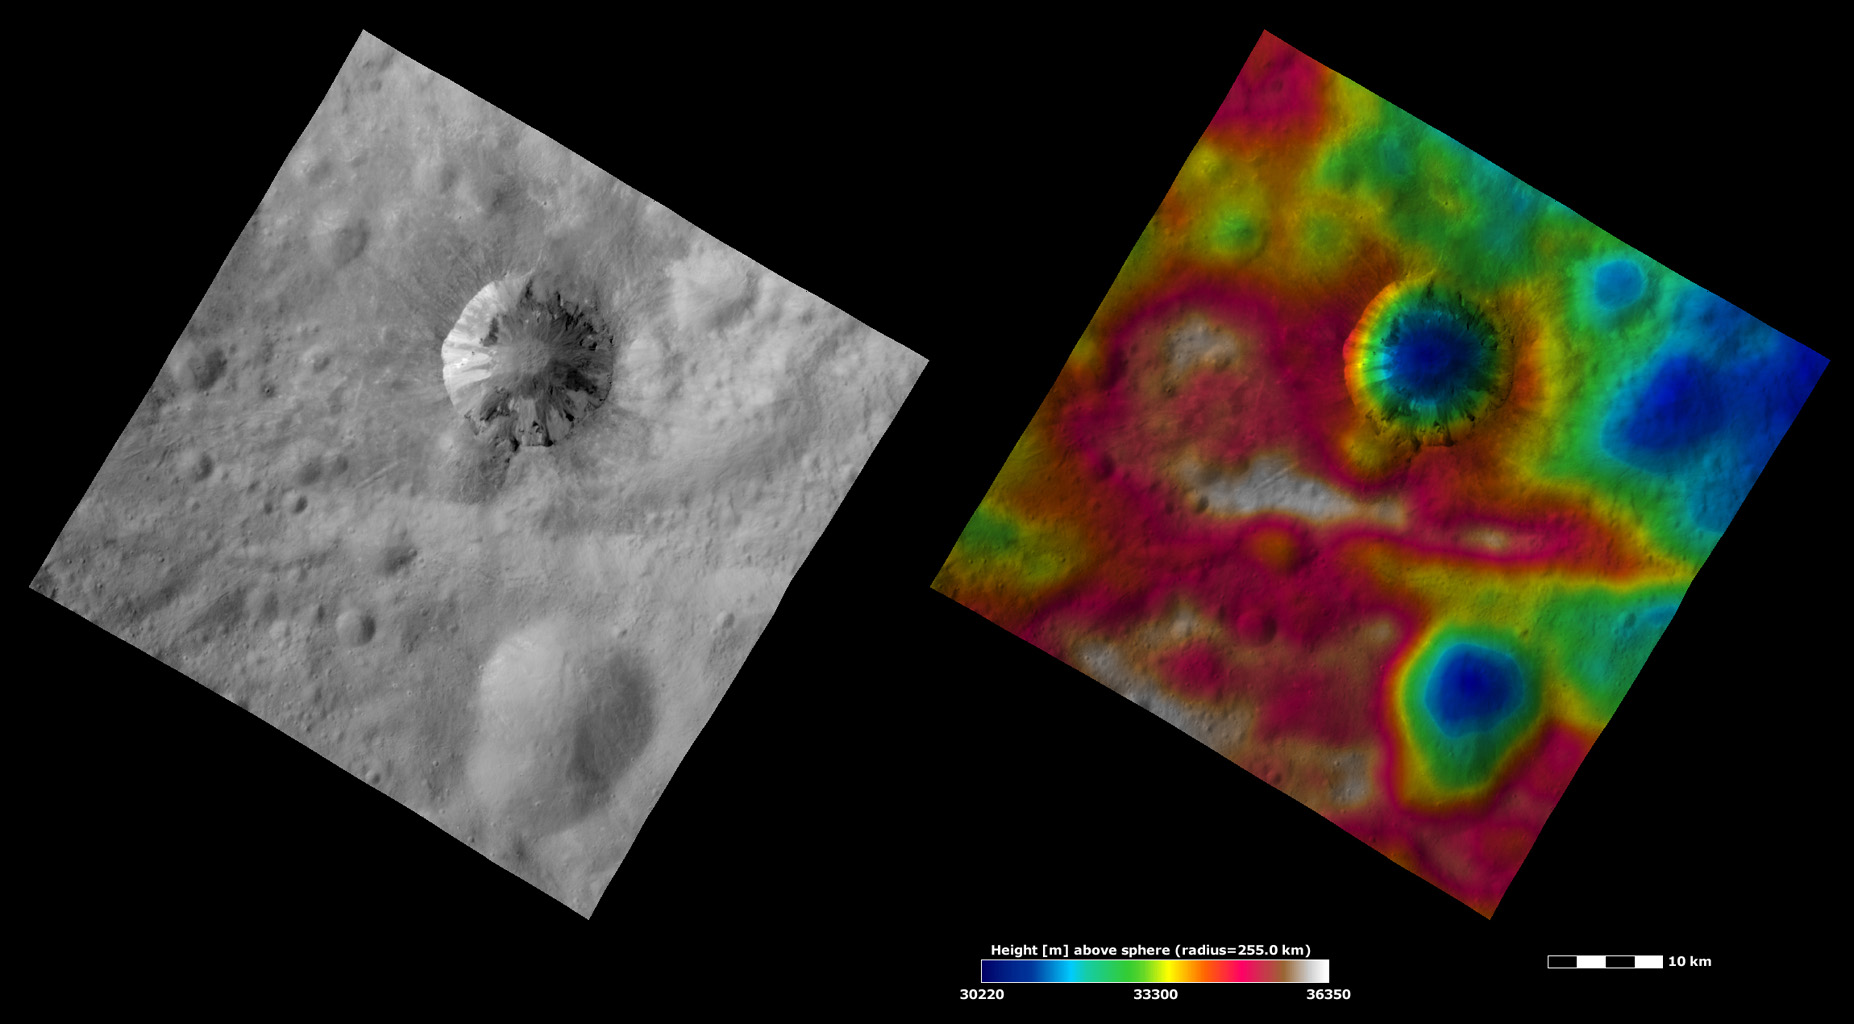 Apparent Brightness and Topography Images of Cornelia Crater